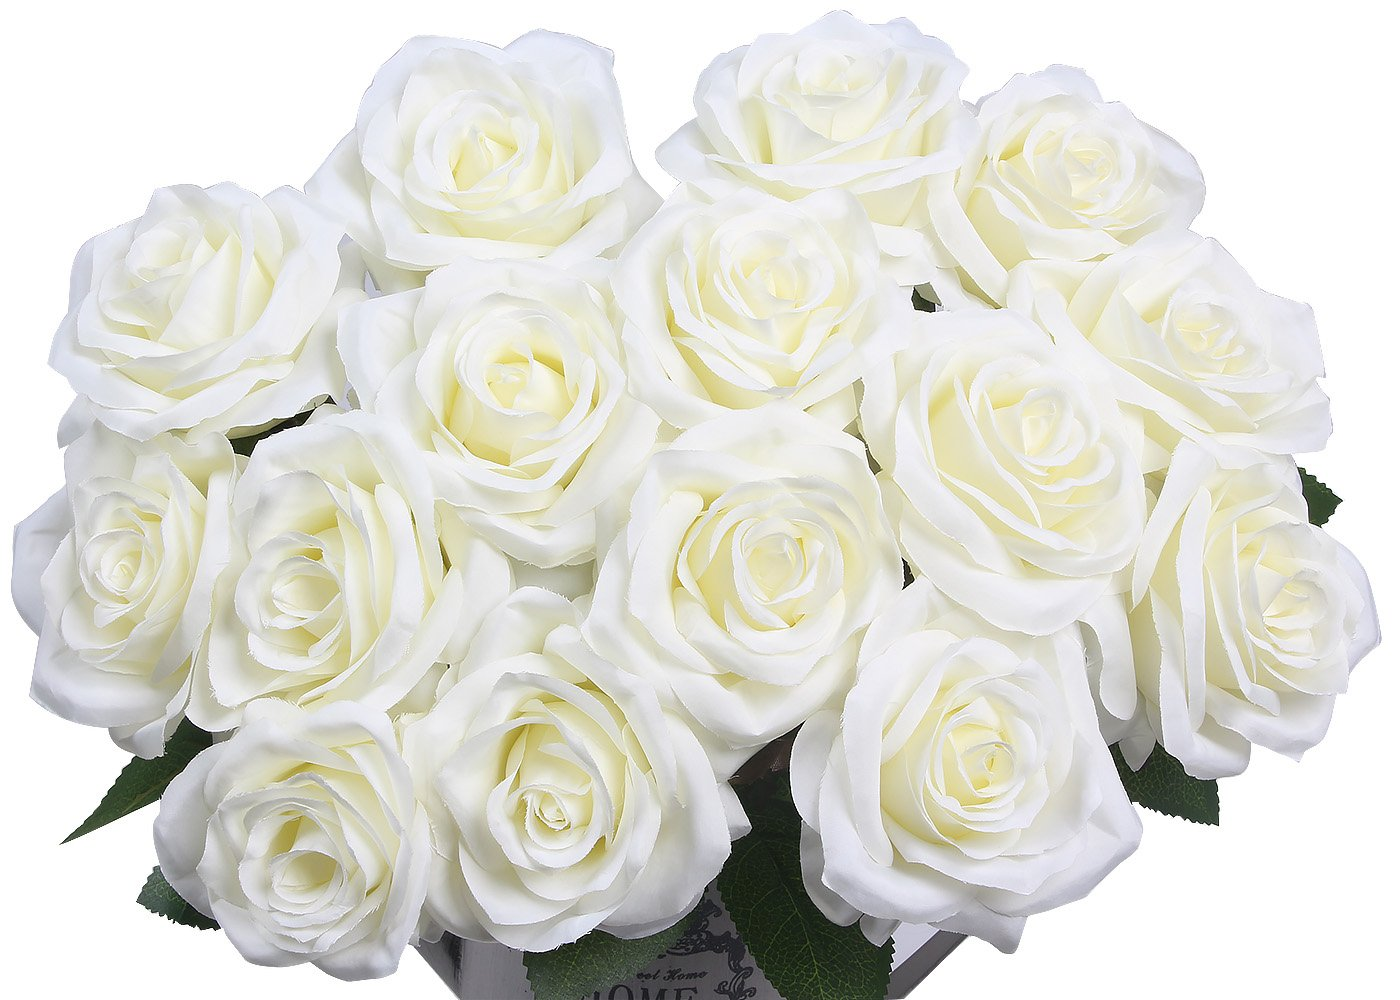 Amazon artificial flowers amyhomie silk roses bouquet home amazon artificial flowers amyhomie silk roses bouquet home wedding decoration pack of 15 15 white home kitchen izmirmasajfo